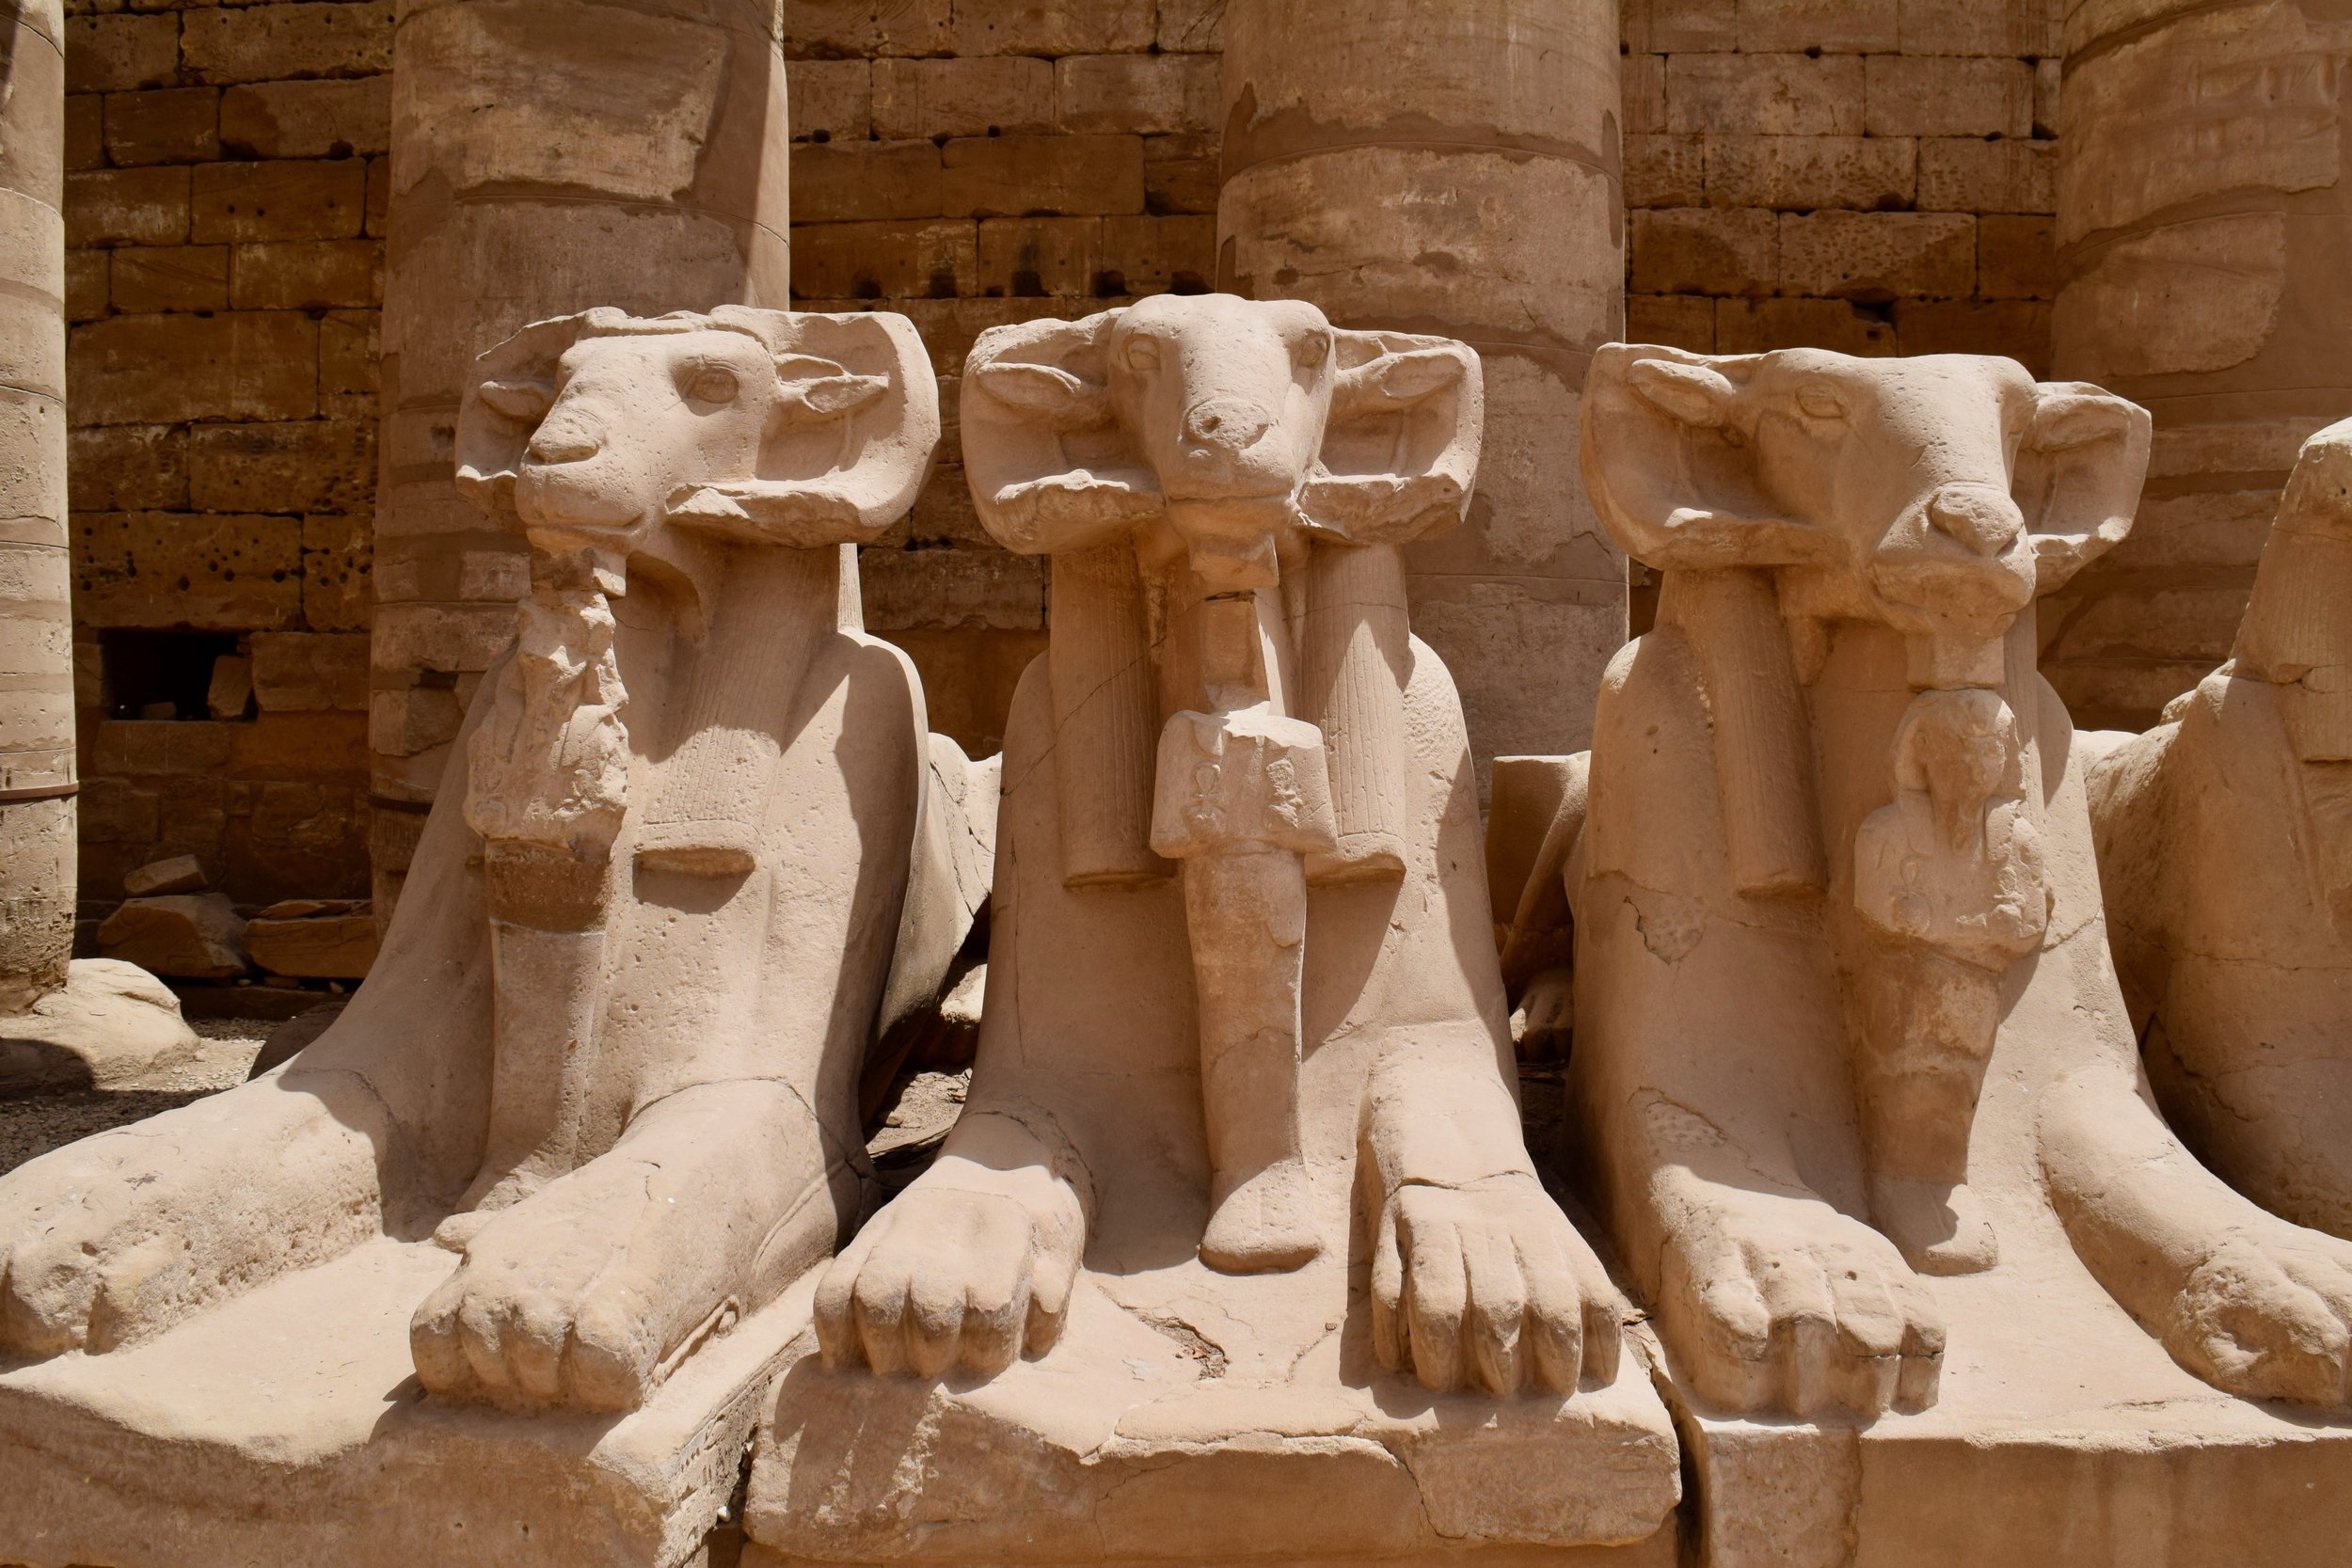 Collection of sphinxes in the first courtyard